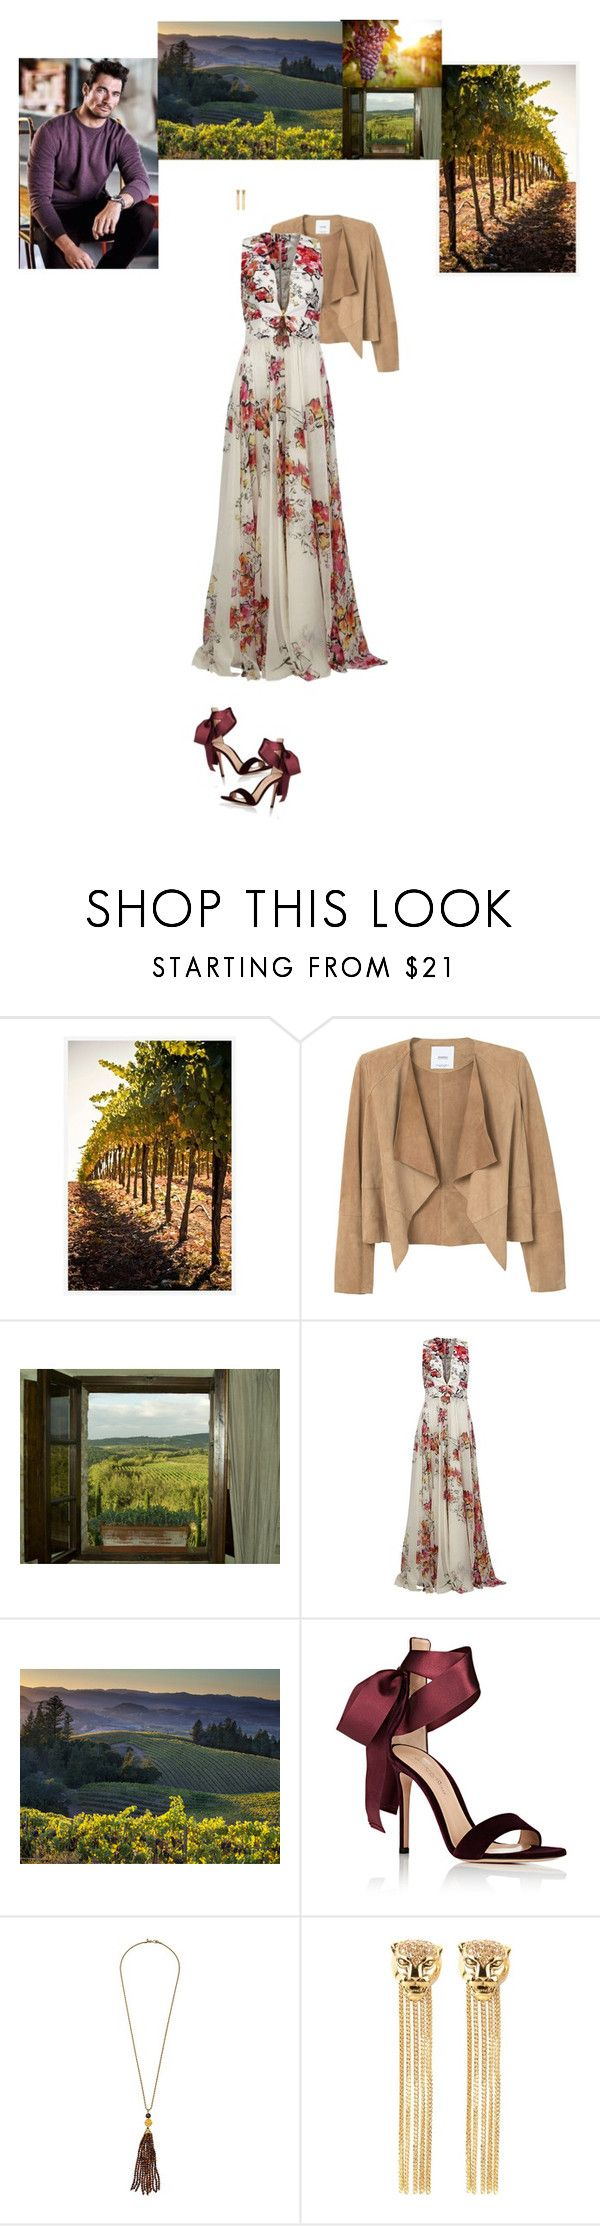 """Toscaanse Bruiloft"" by class-in-the-corner-office on Polyvore featuring Pottery Barn, MANGO, Zuhair Murad, Gianvito Rossi, Kenneth Jay Lane and Roberto Cavalli"